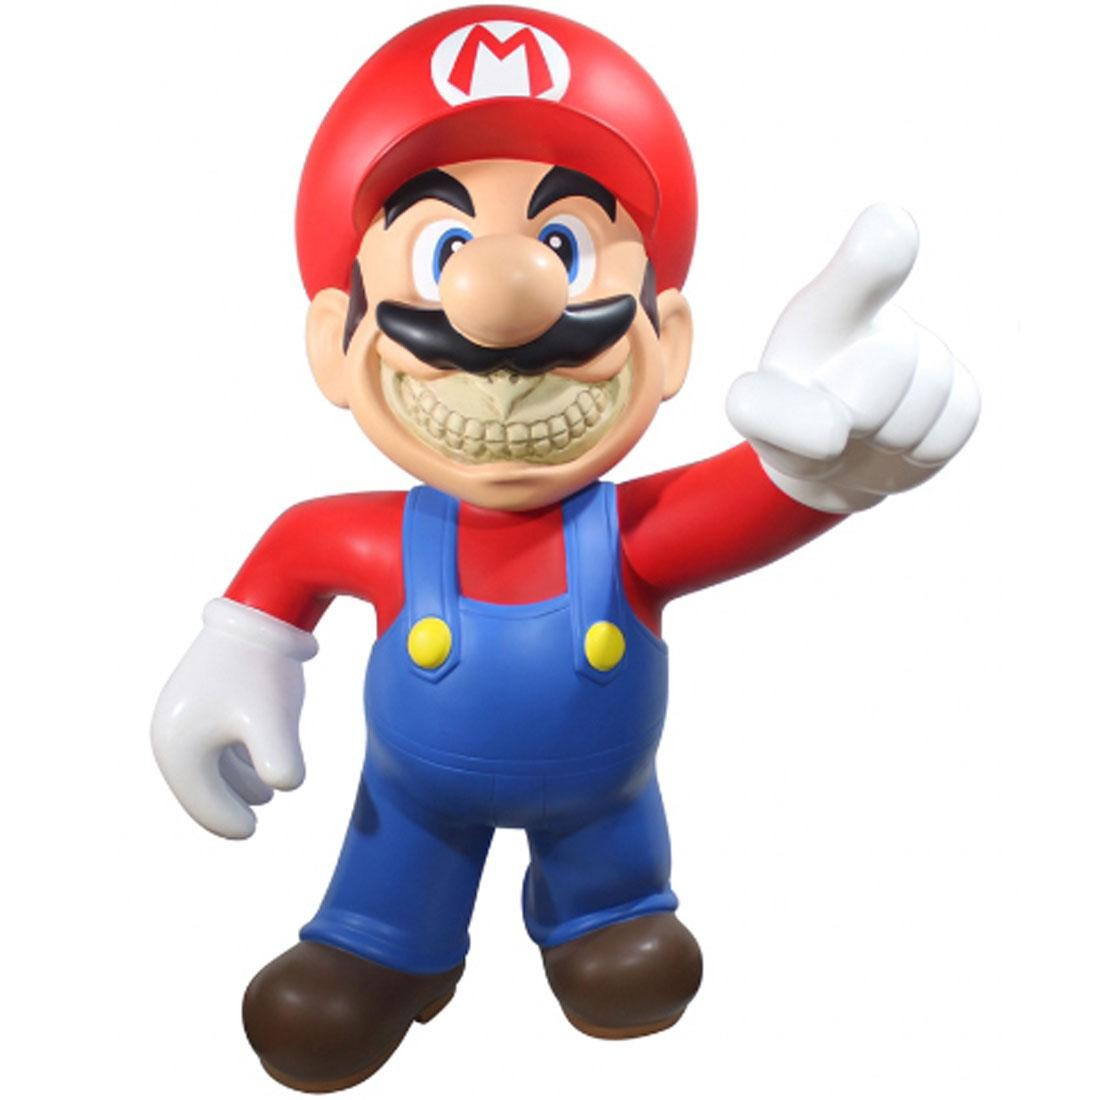 Mindstyle X Ron English Mario Grin 4 Foot Statue Red Blue